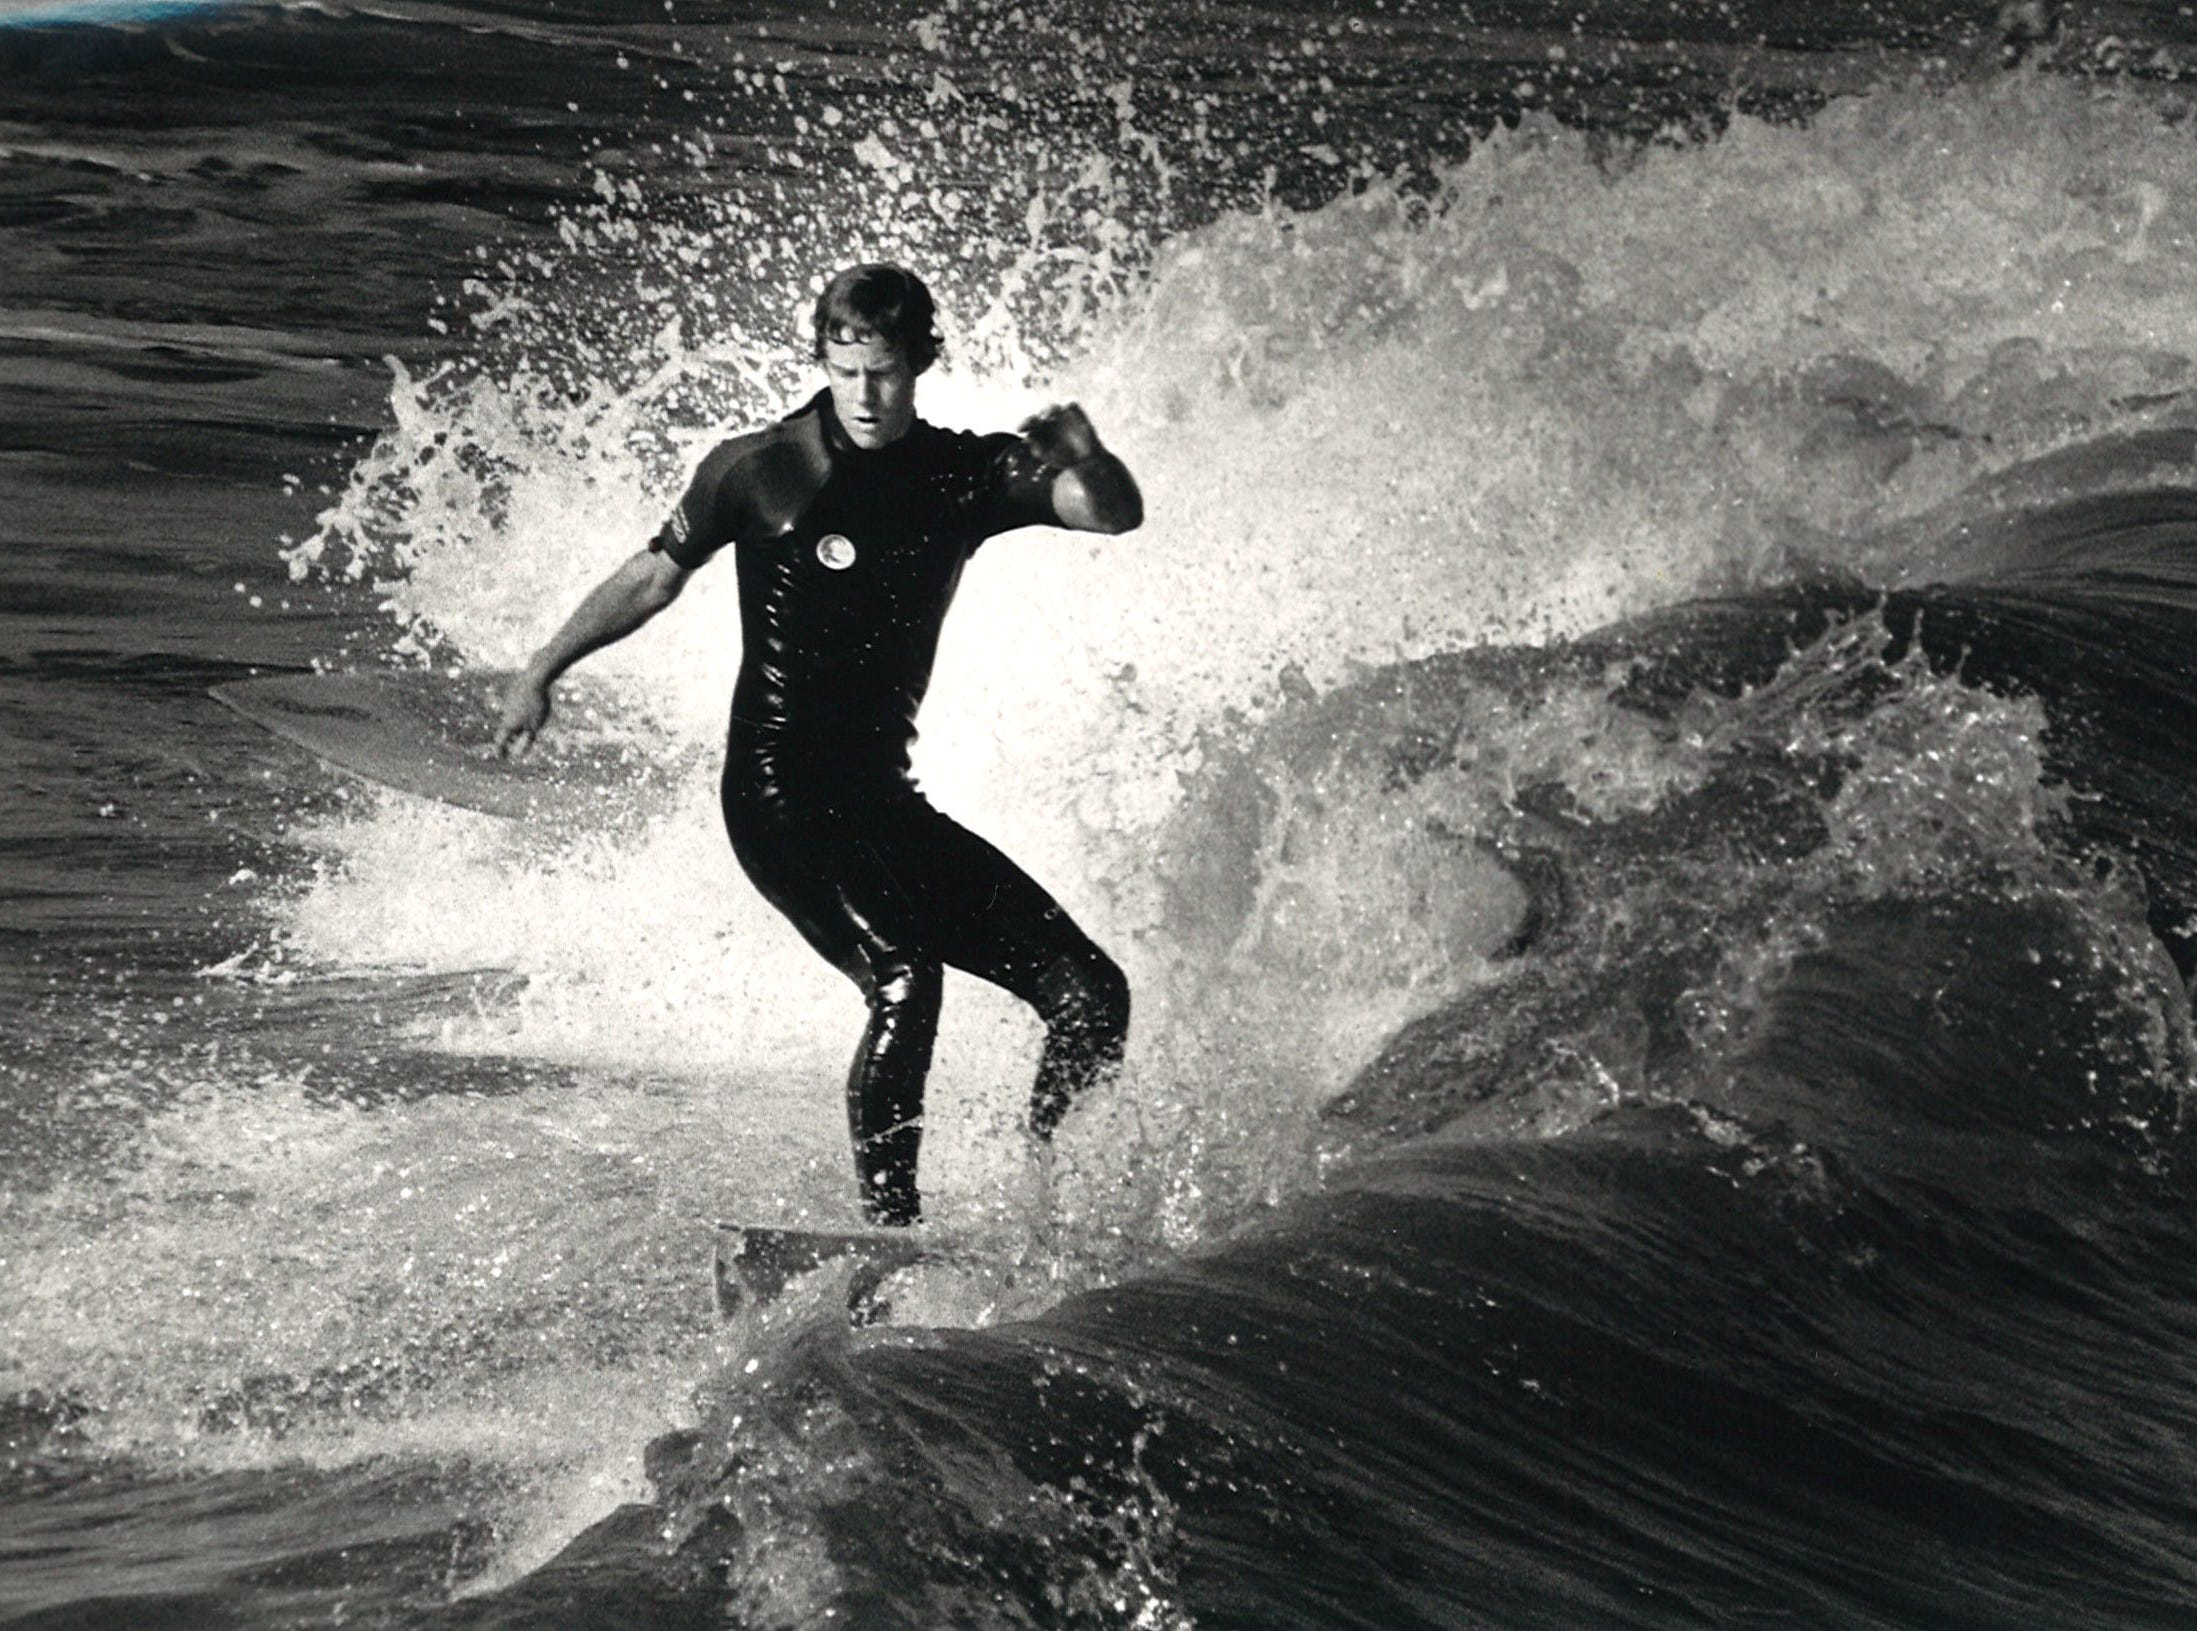 One of about 30 surfers who took to the surf north of Bob Hall Pier in Corpus Christi on Feb. 18, 1986.